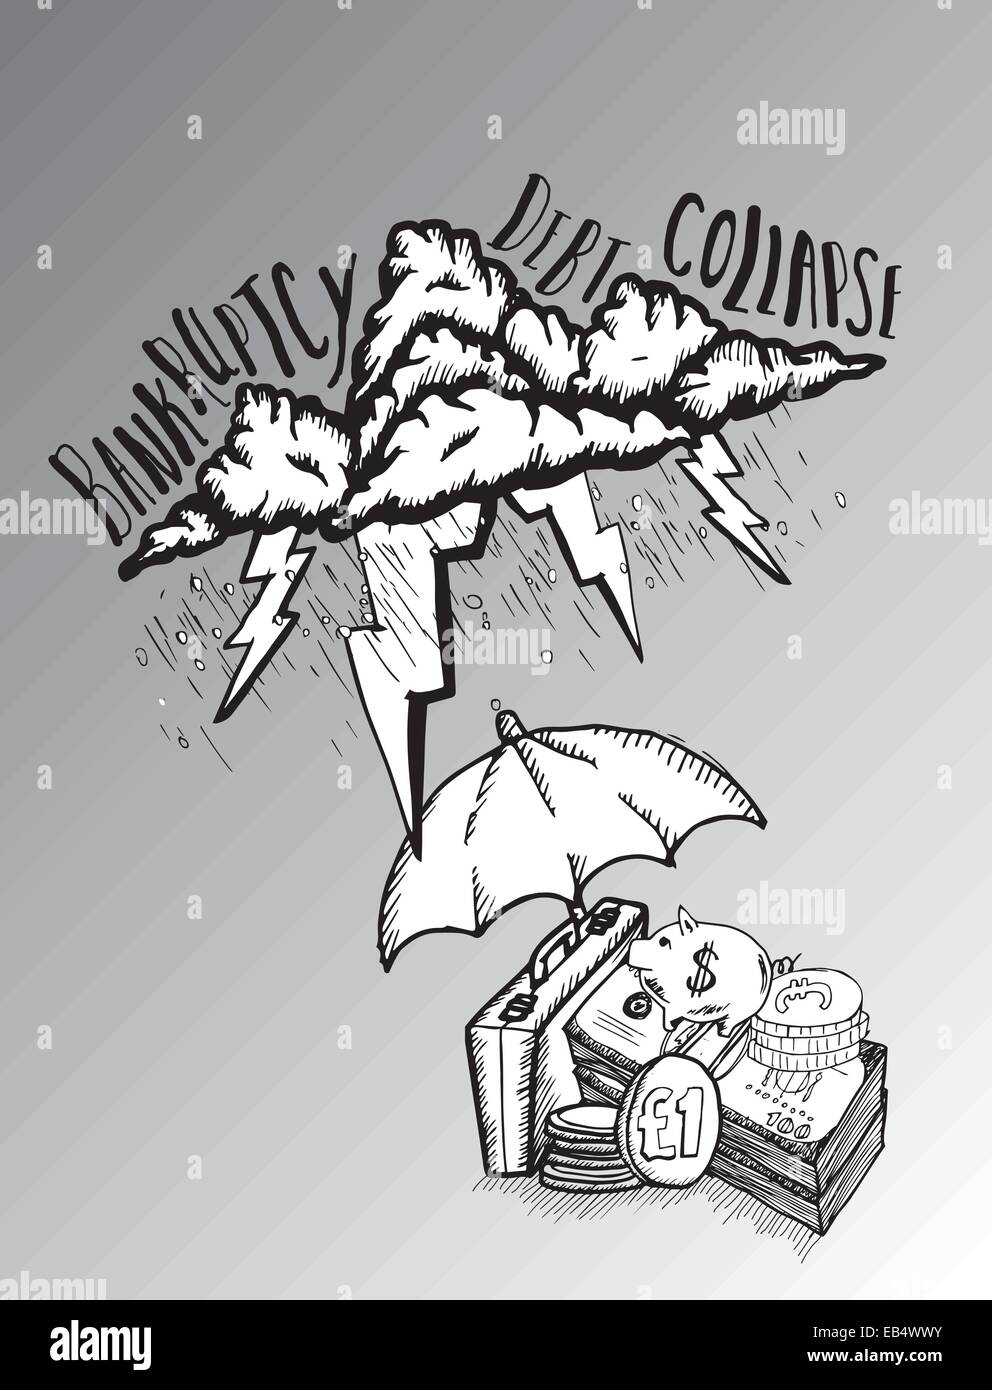 Umbrella protecting savings from debt storm - Stock Vector